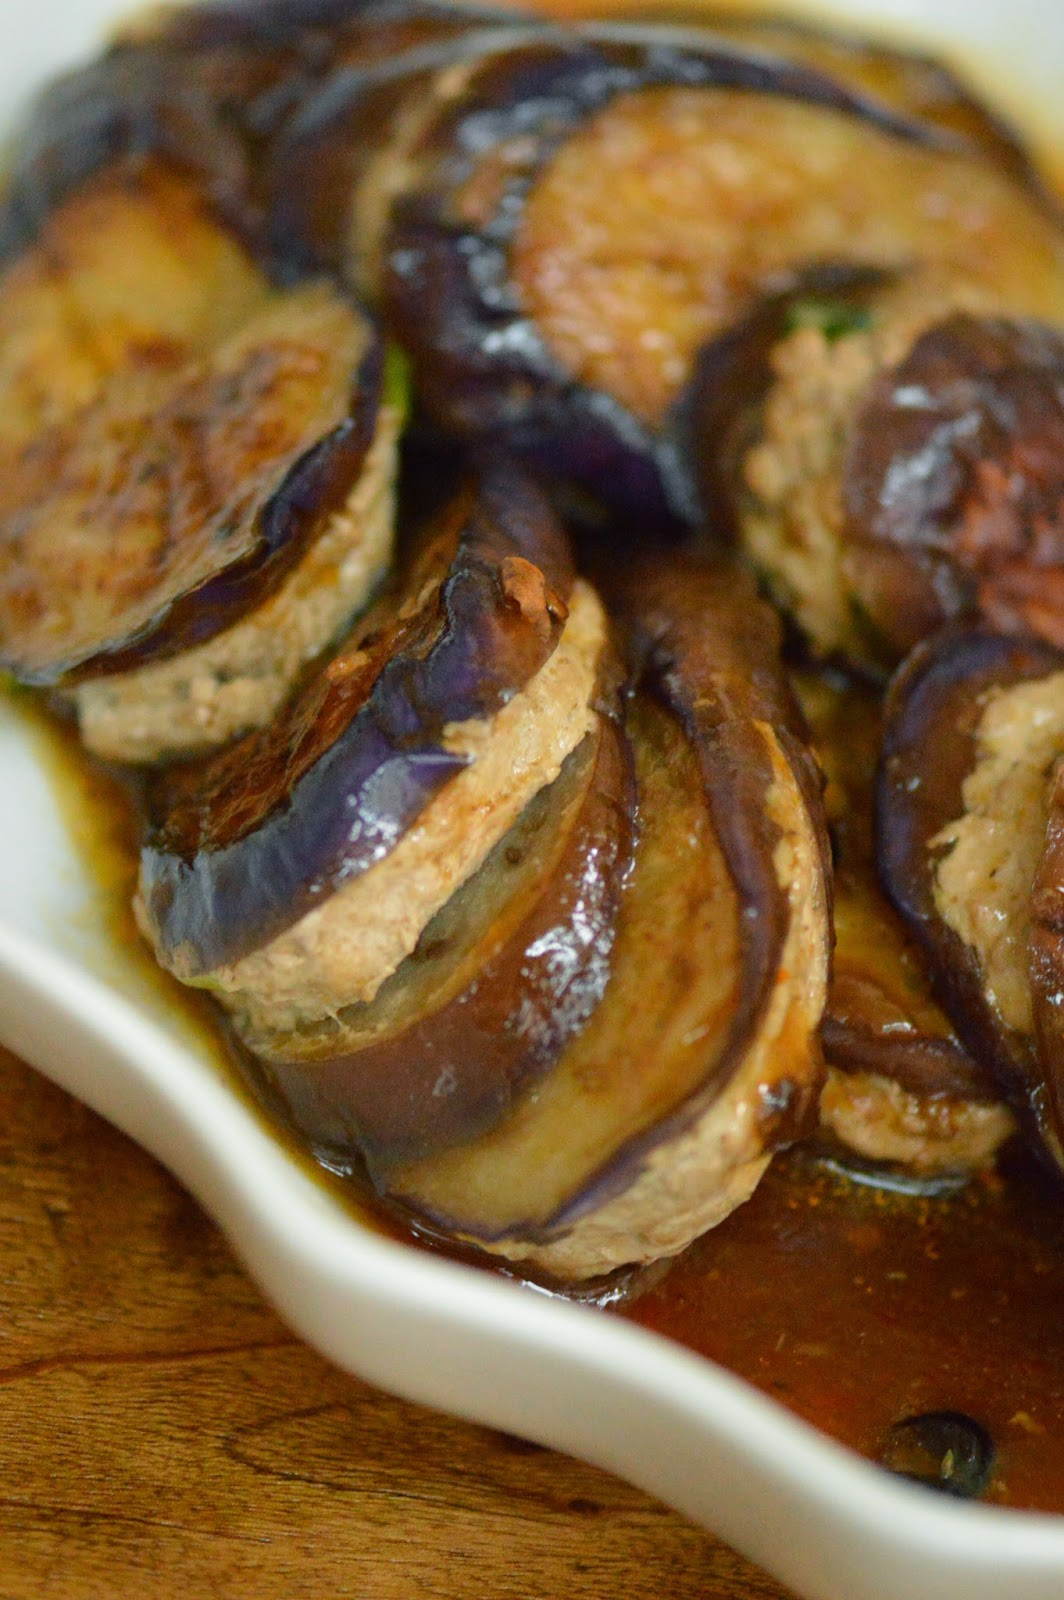 Chinese stuffed eggplant dimsumptuous this results in a nicely browned exterior with a soft moist interior while simplifying the cooking and cleaning process recipe for chinese stuffed eggplant forumfinder Choice Image